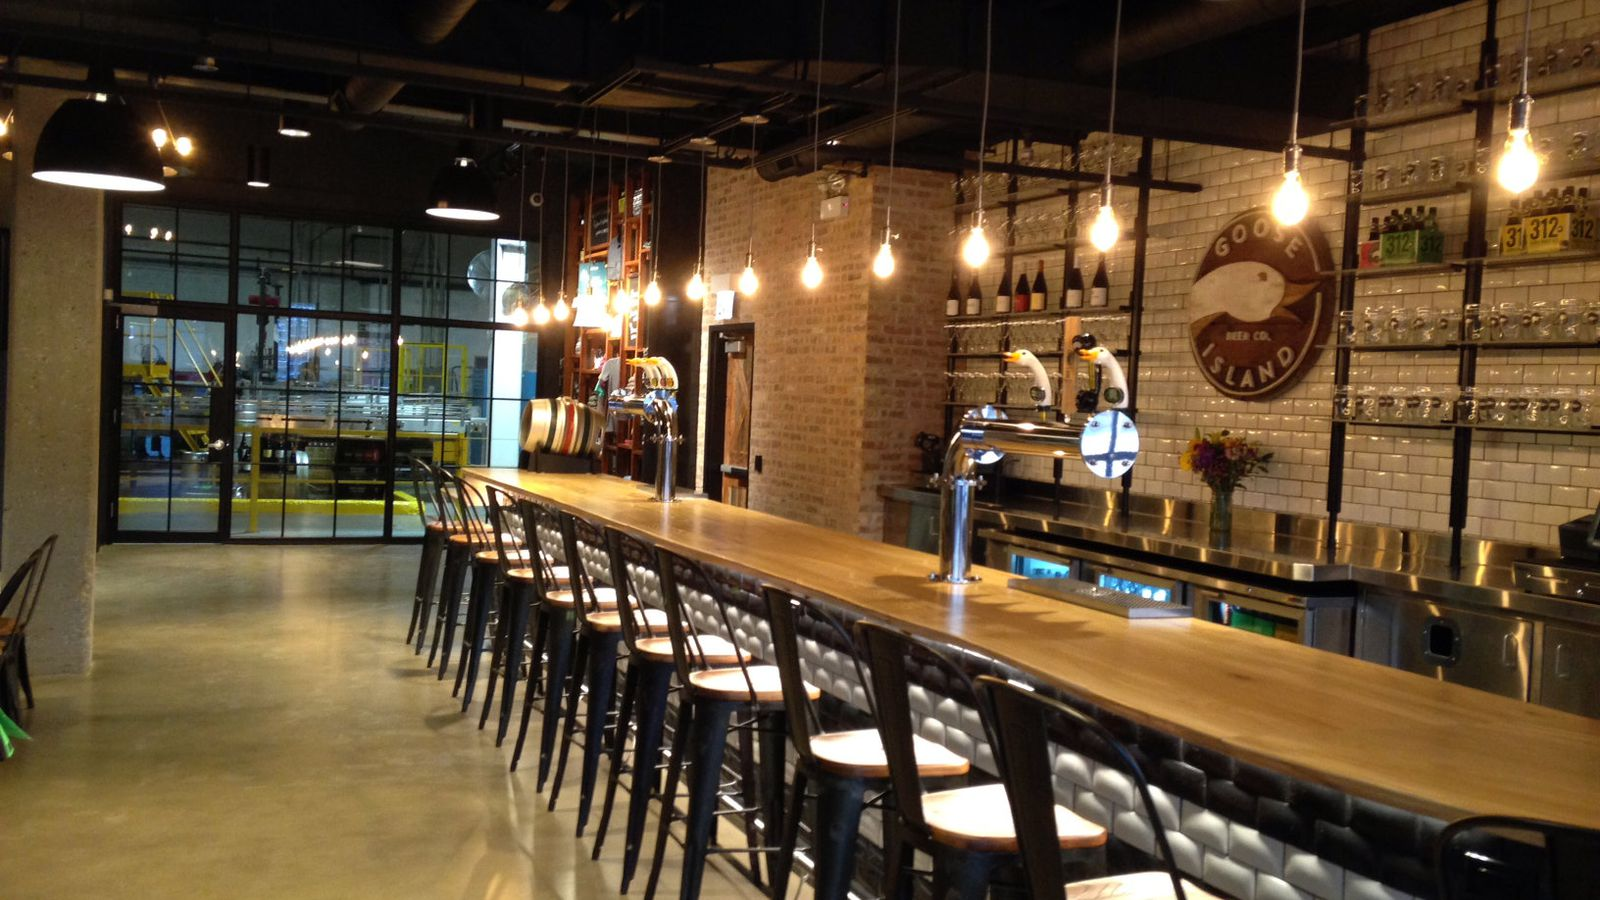 Forthcoming Goose Island Tasting Room To Pour Bourbon